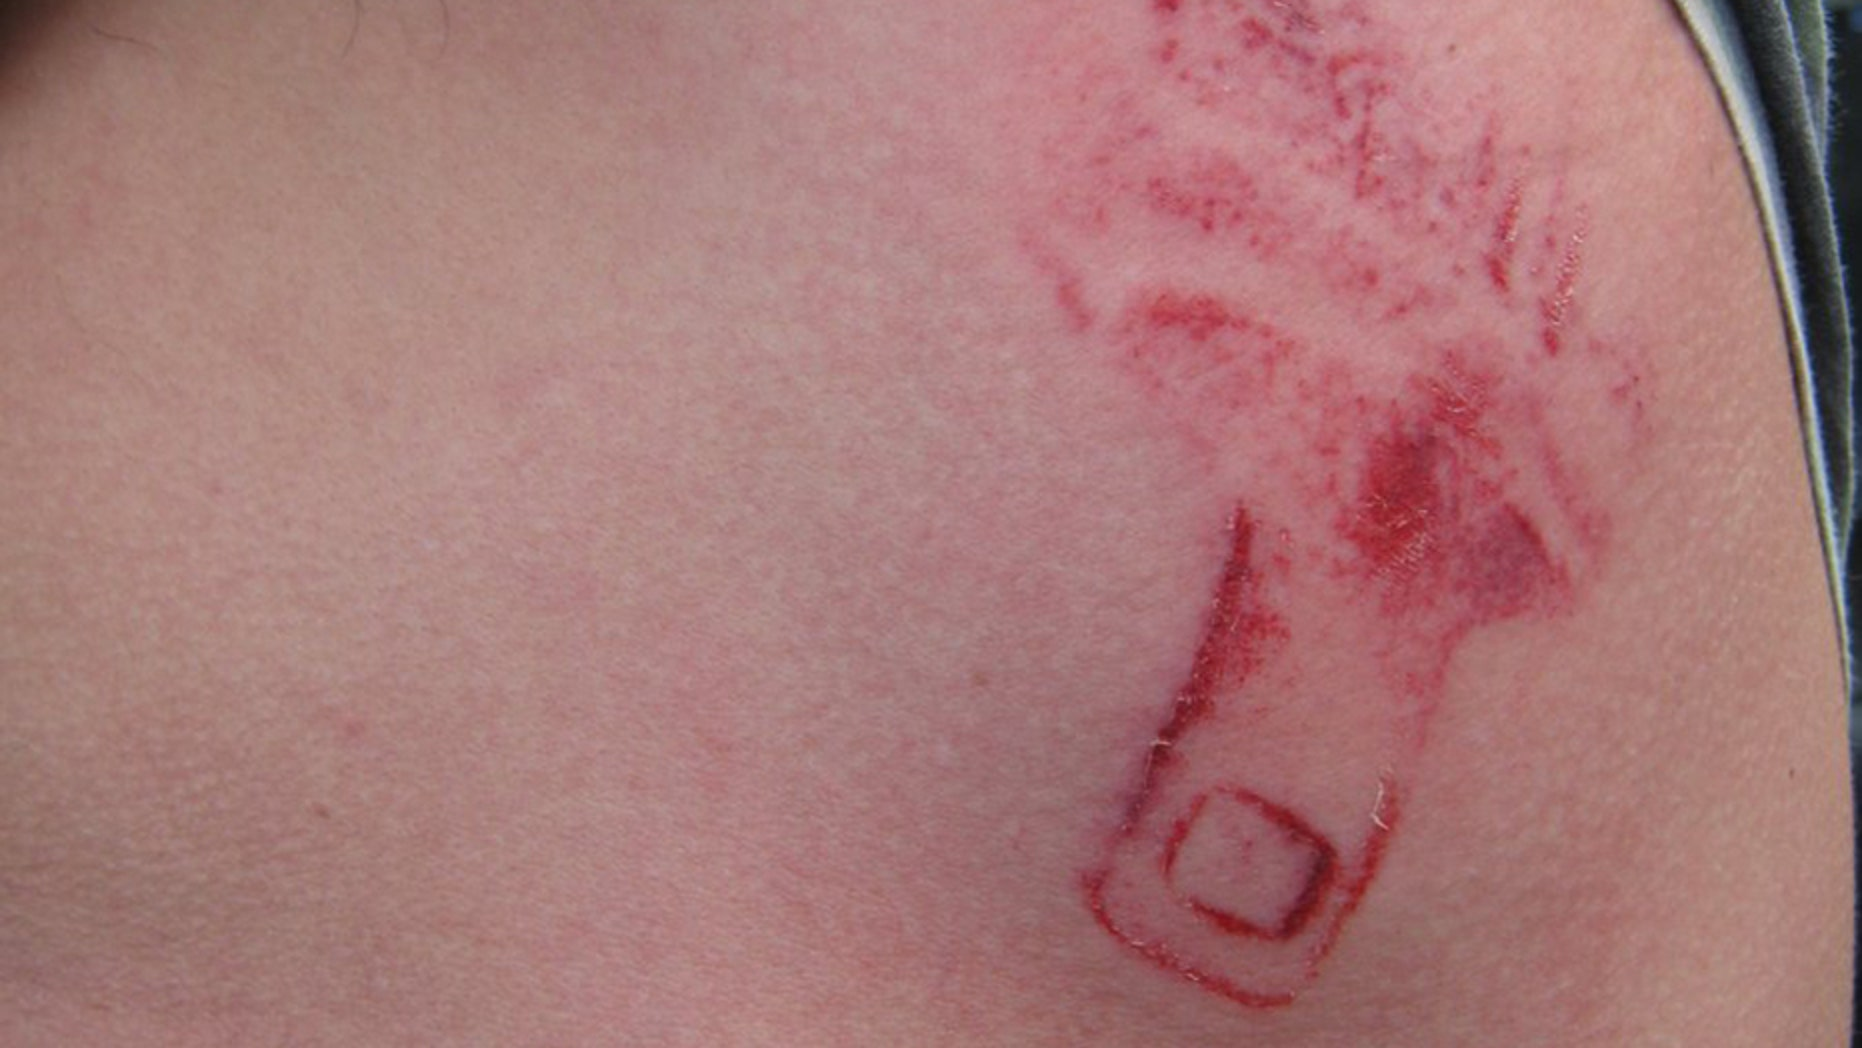 Washington state authorities shared a photo Wednesday of a man's unexpected car crash wound, taking the moment to stress the need for people to wear seatbelts.